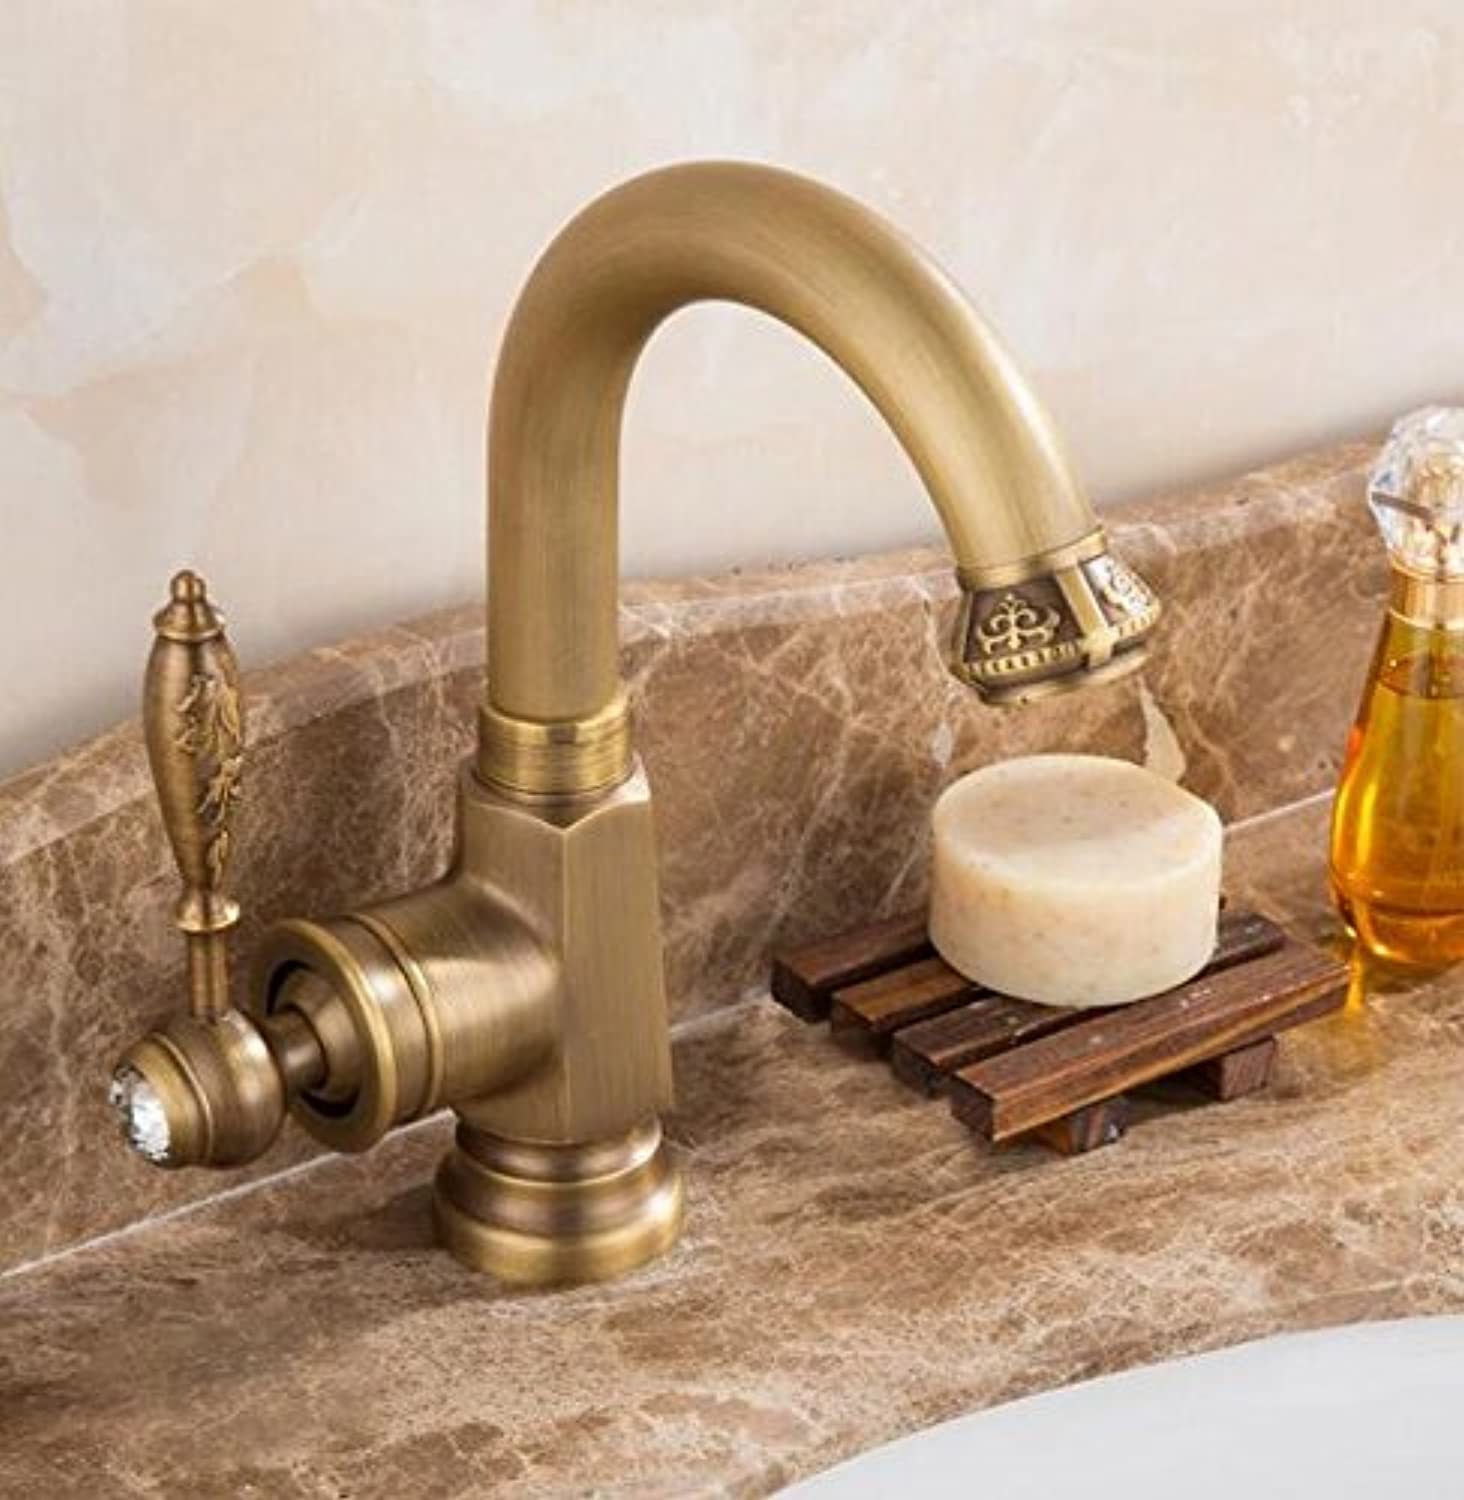 Mkkwp Water Tap High Quality Antique Kitchen Faucet Cold And Hot Bathroom Sink Faucet Basin Faucet